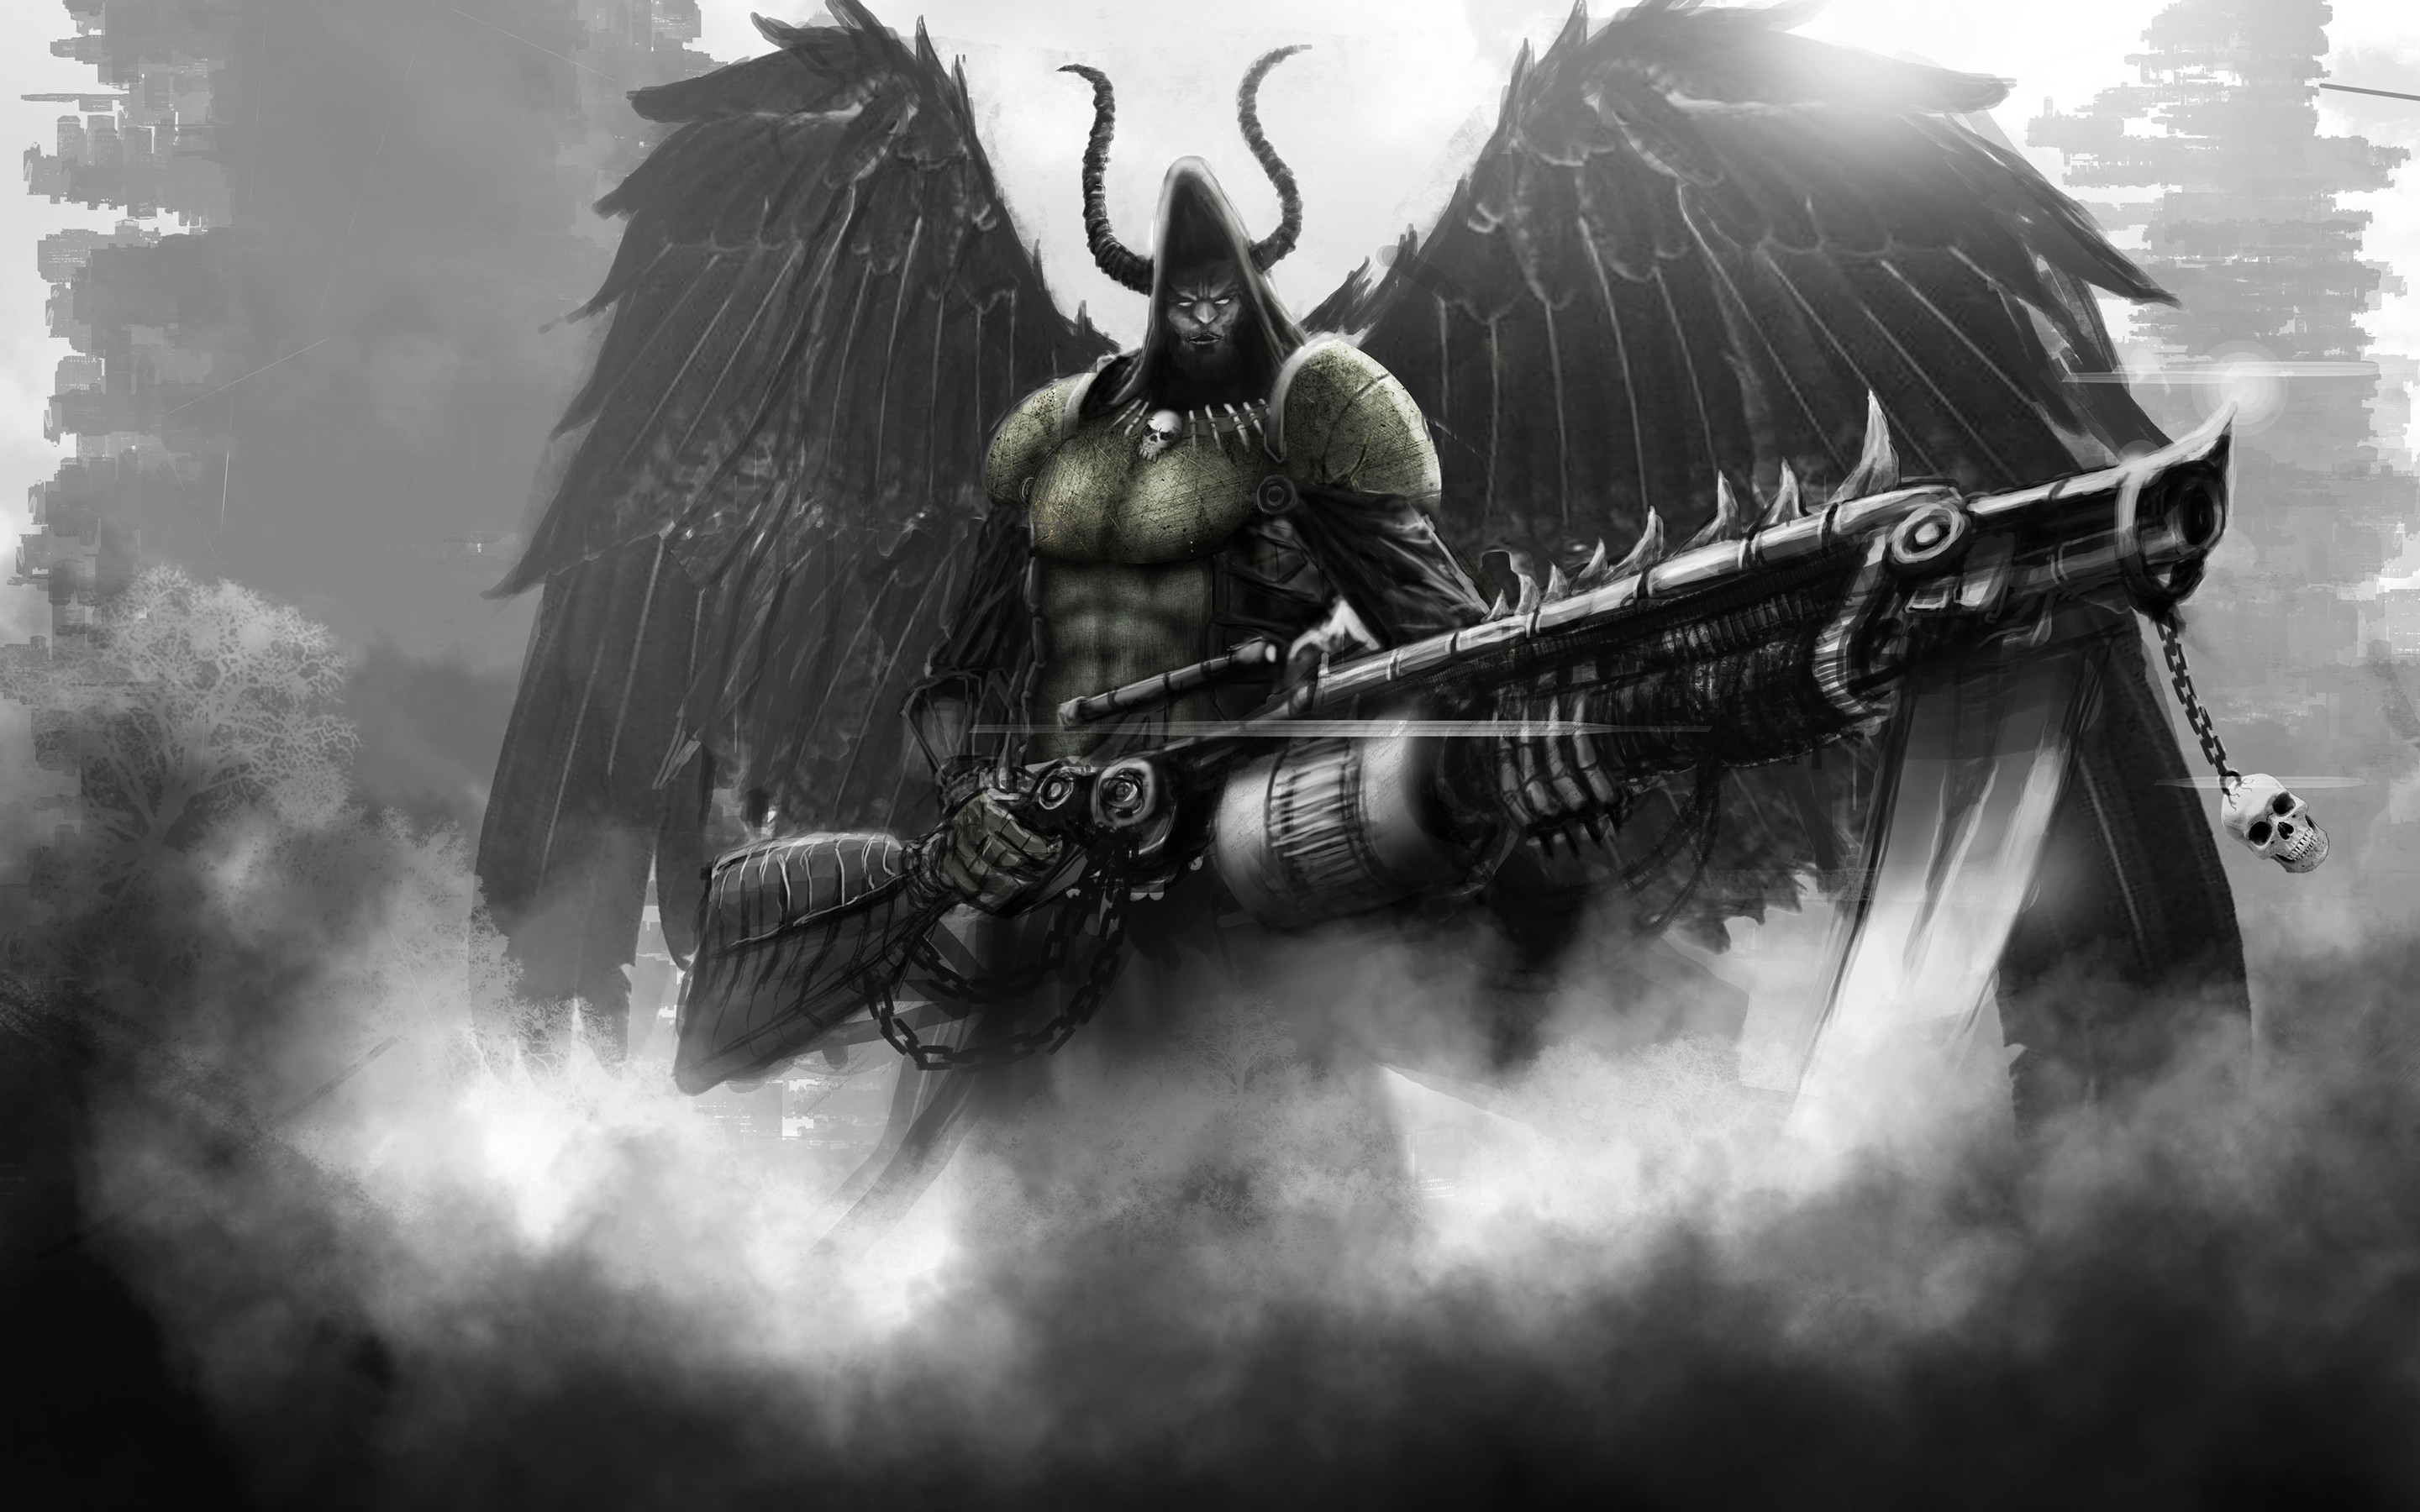 2880x1800 angel of death wallpaper free for android free download on hd wallpapers pinterest